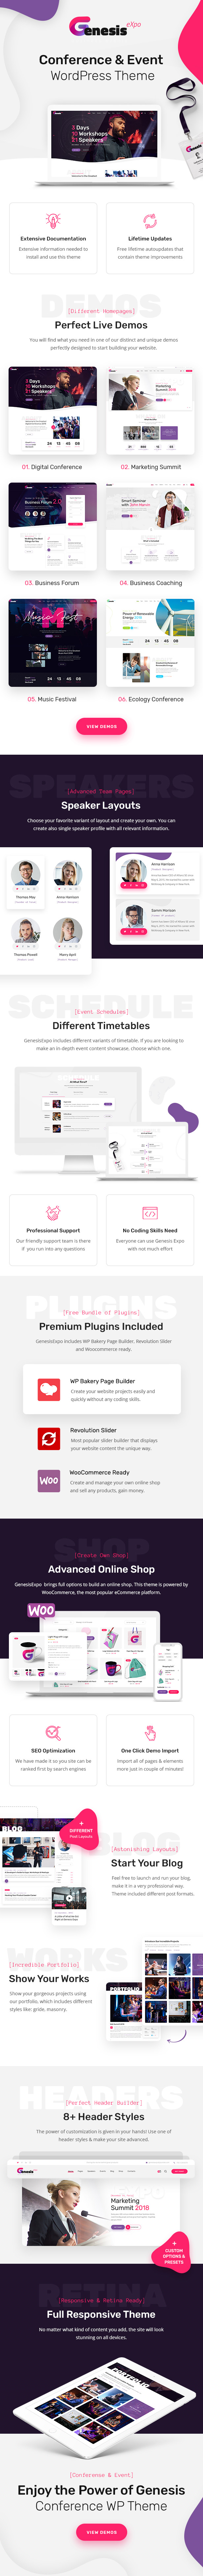 GenesisExpo | Business Events & Conference WordPress Theme - 4